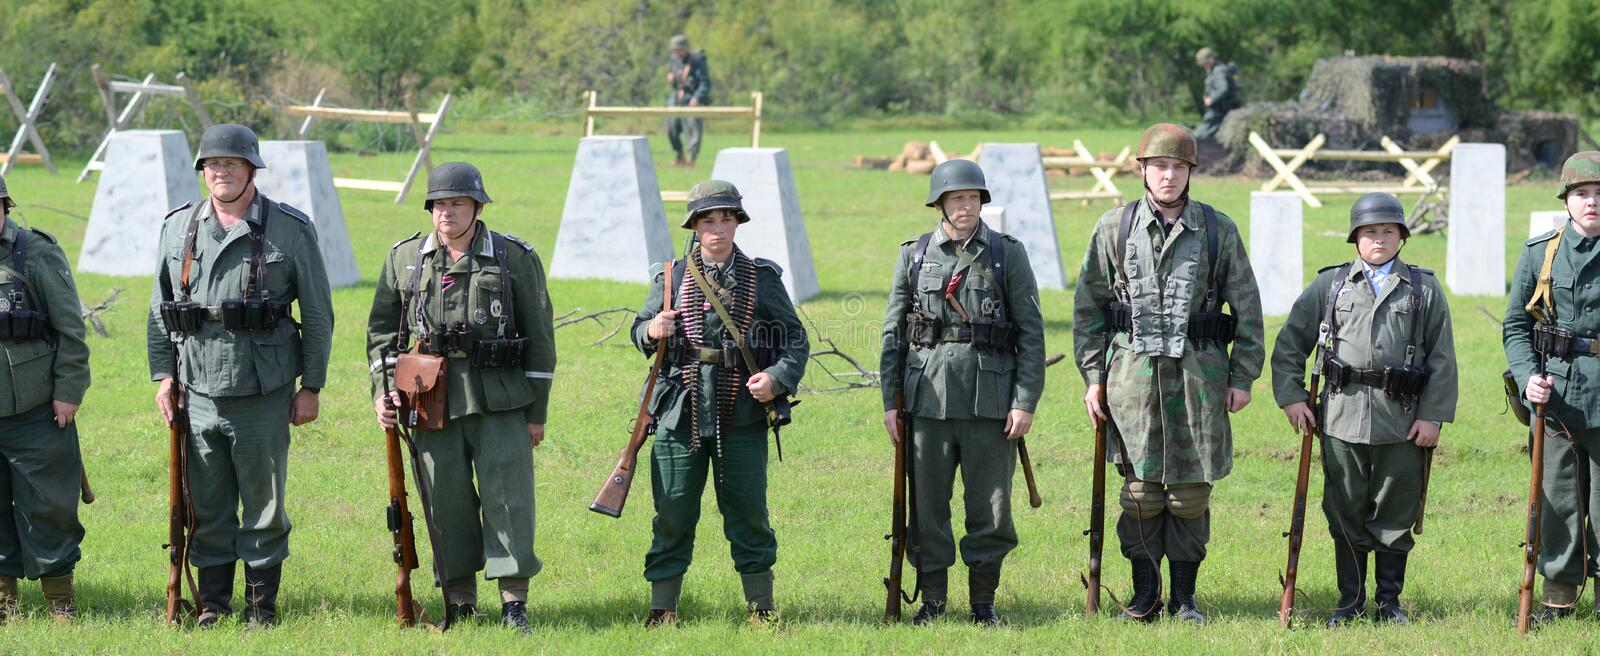 Troops at WWII reenactment stock image